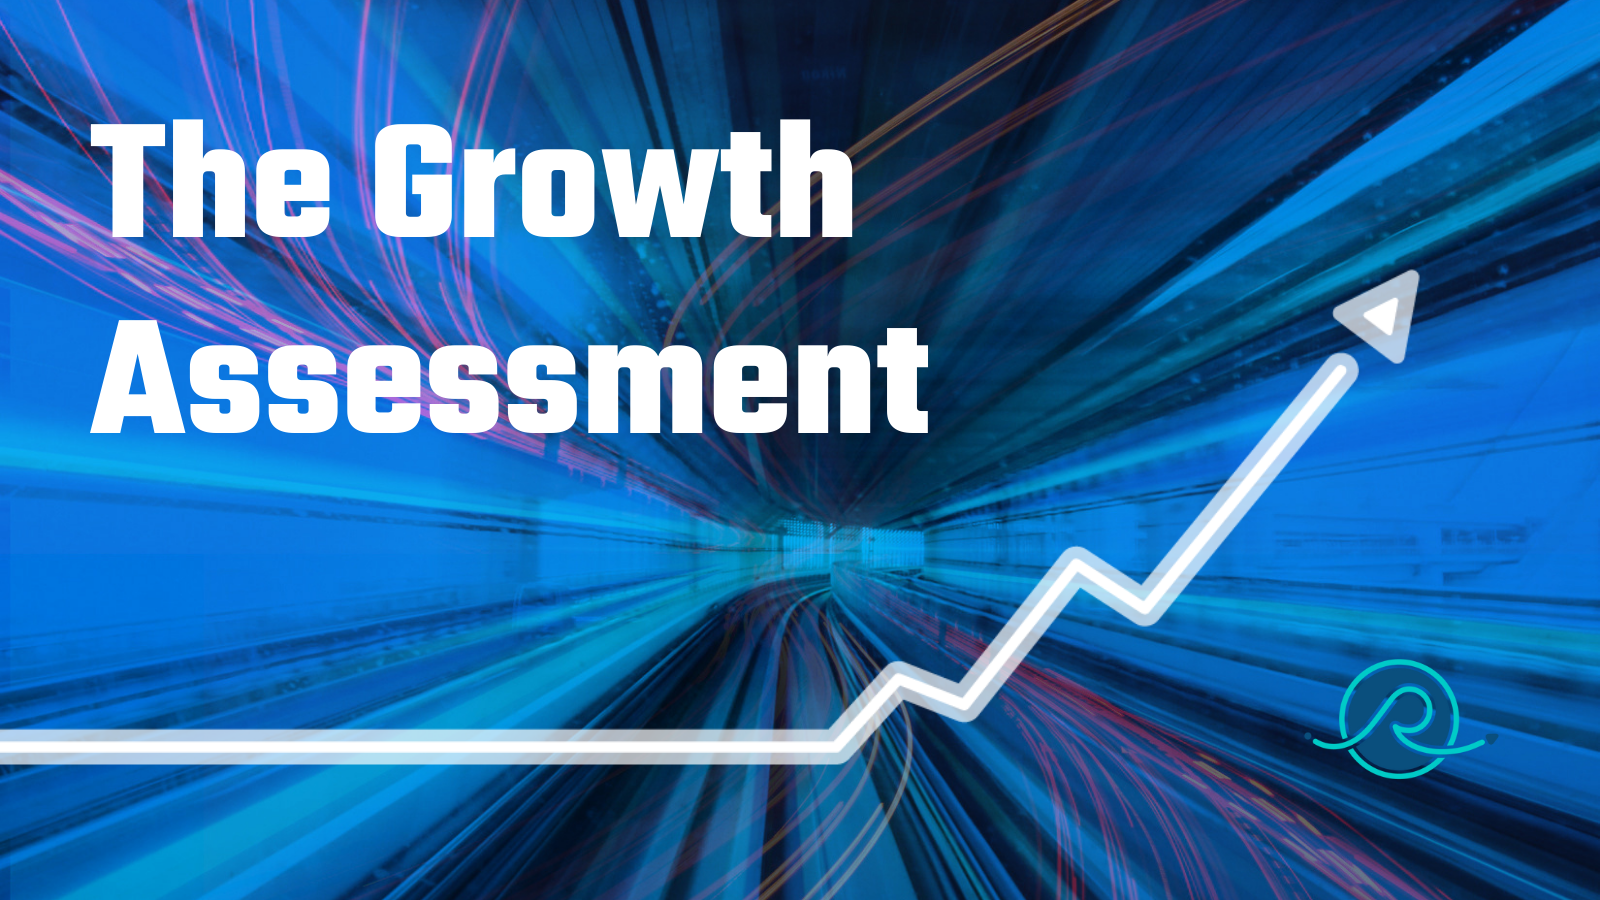 Growth Assessment SOCIAL IMAGE